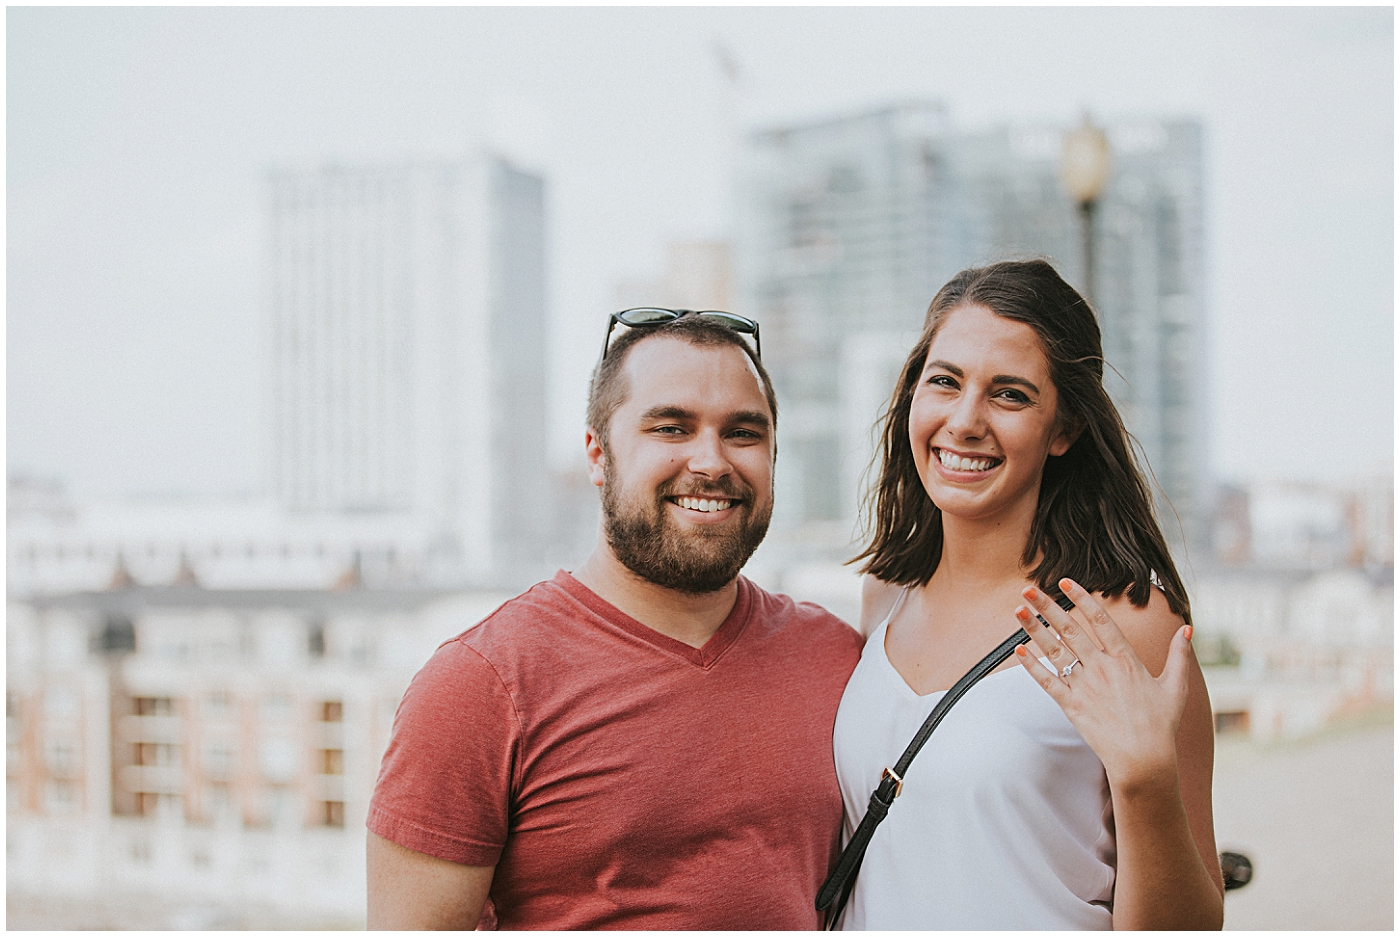 2016-07-24_0018 Our Best Friends' Scenic Proposal at Federal Hill | Haleigh + Mike